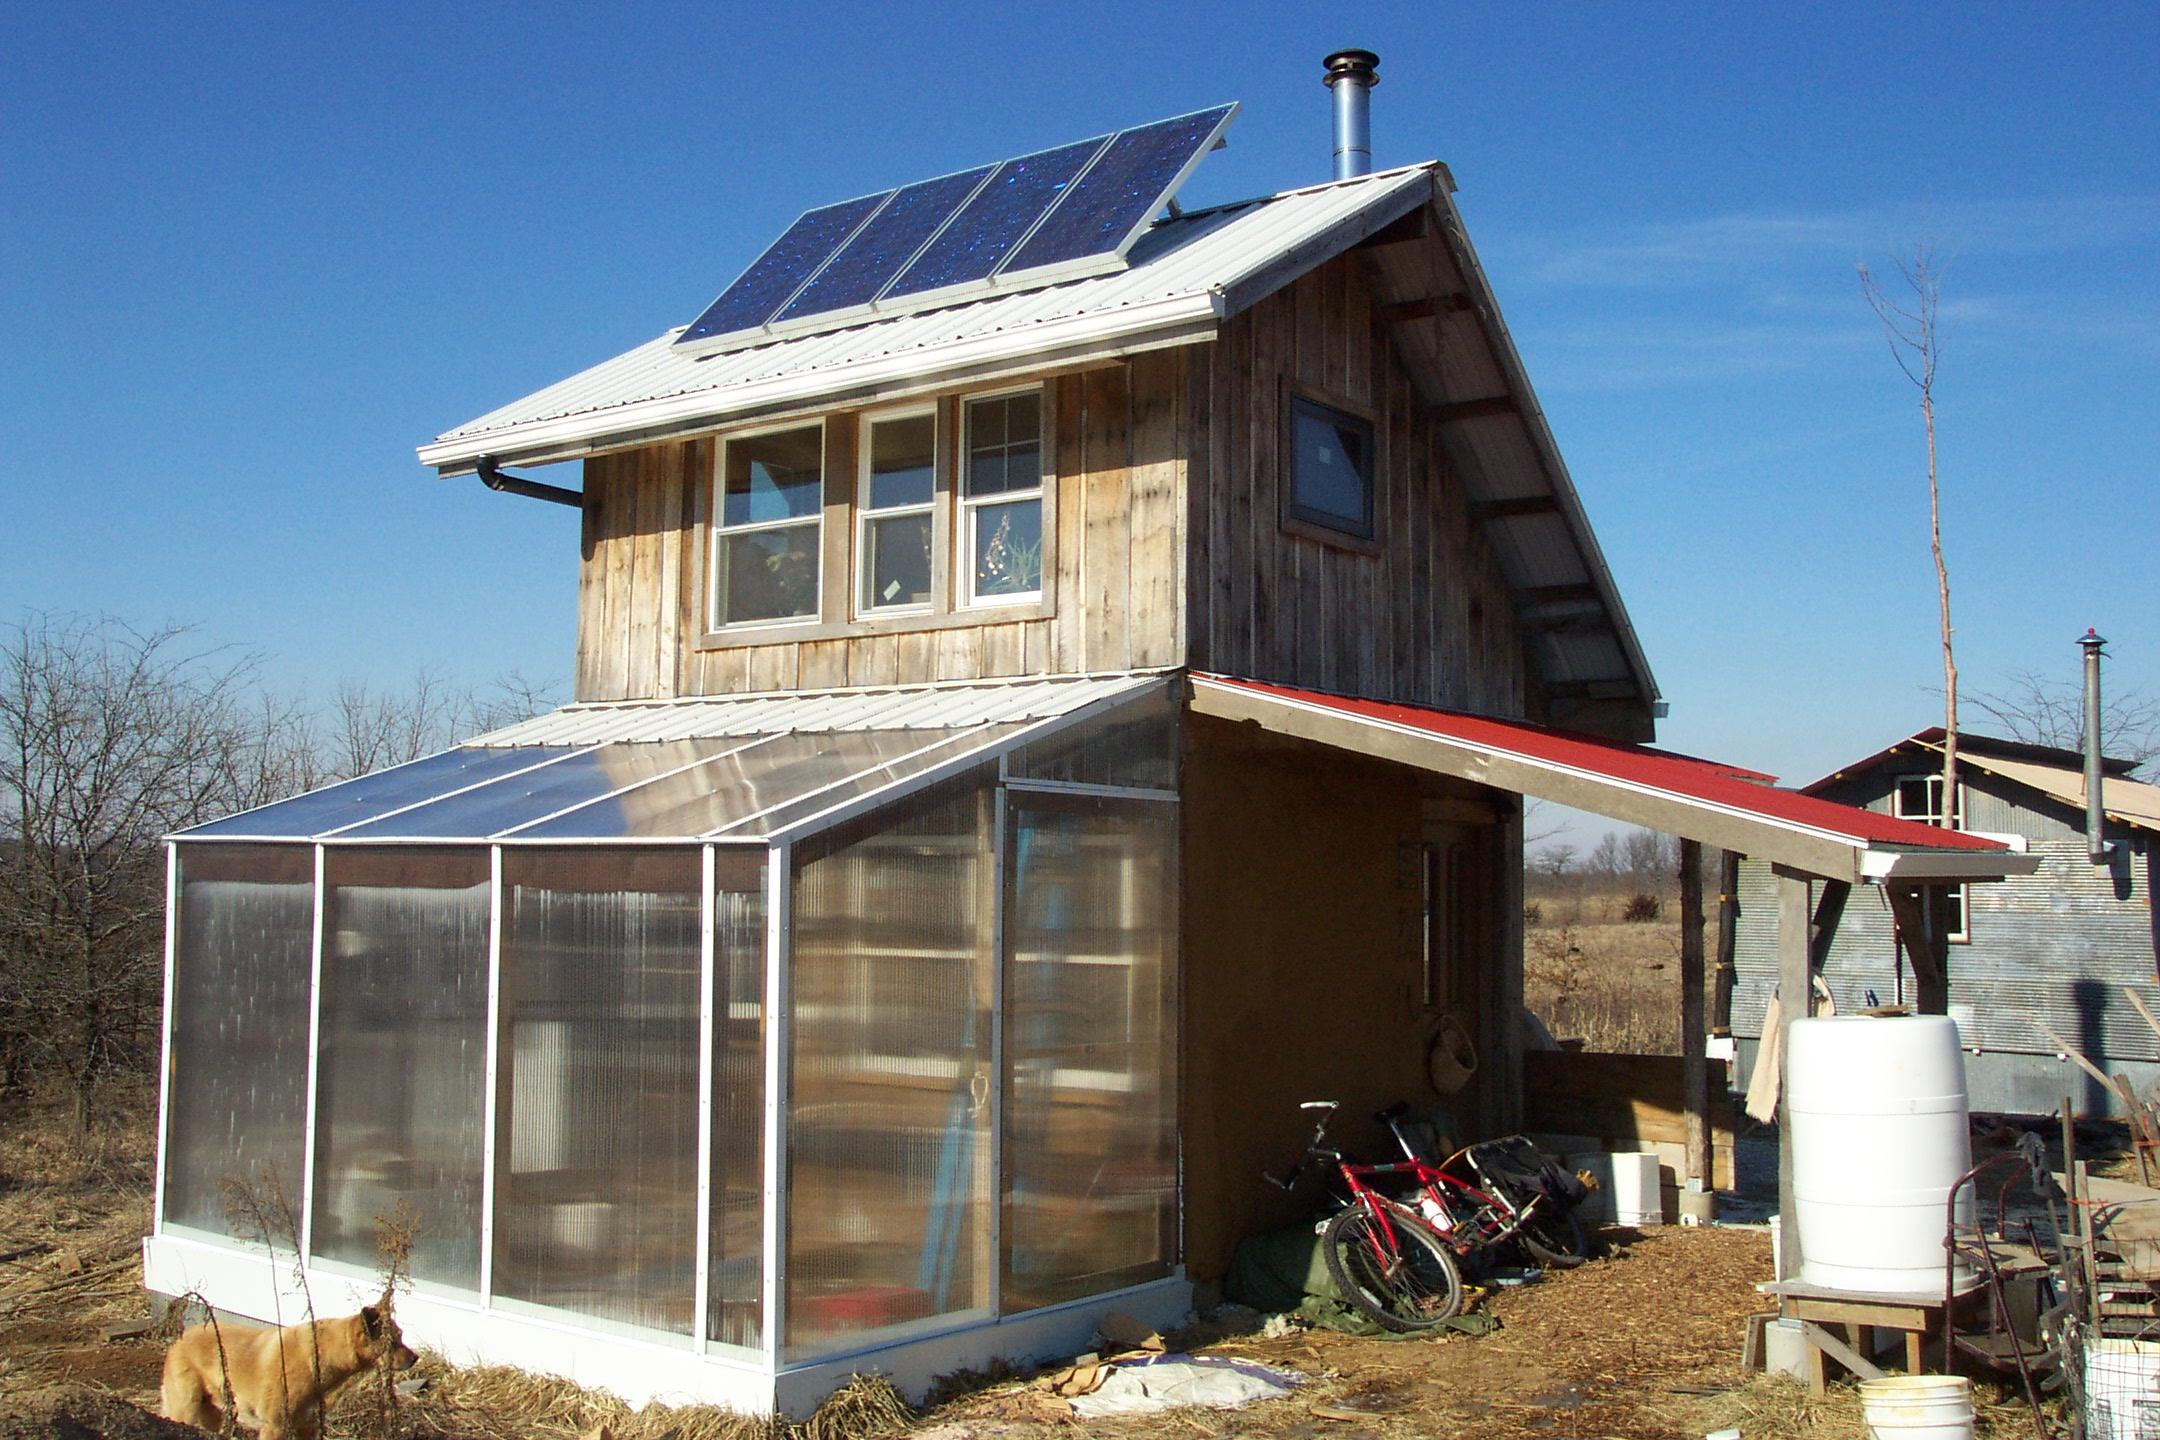 Exterior Lovely Small Sustainable Homes Numerous Solar Cell